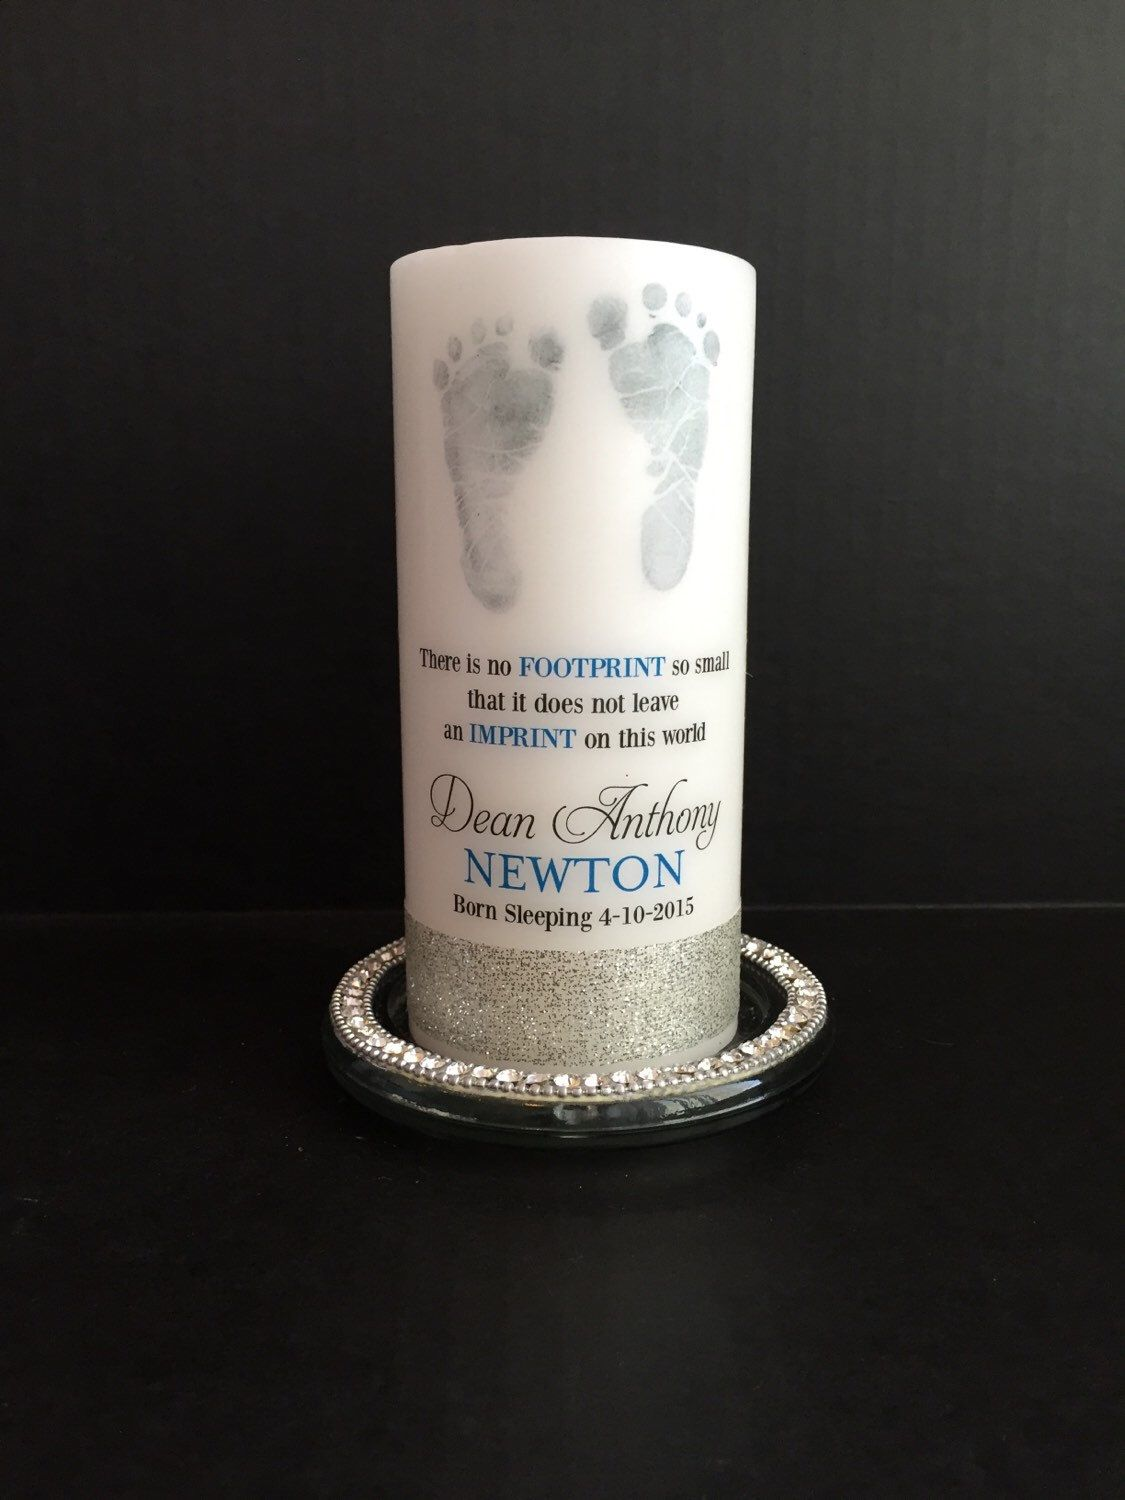 Footprint baby memorial candle personalized candle born sleeping footprint baby memorial candle personalized candle born sleeping candle angel baby candle negle Choice Image